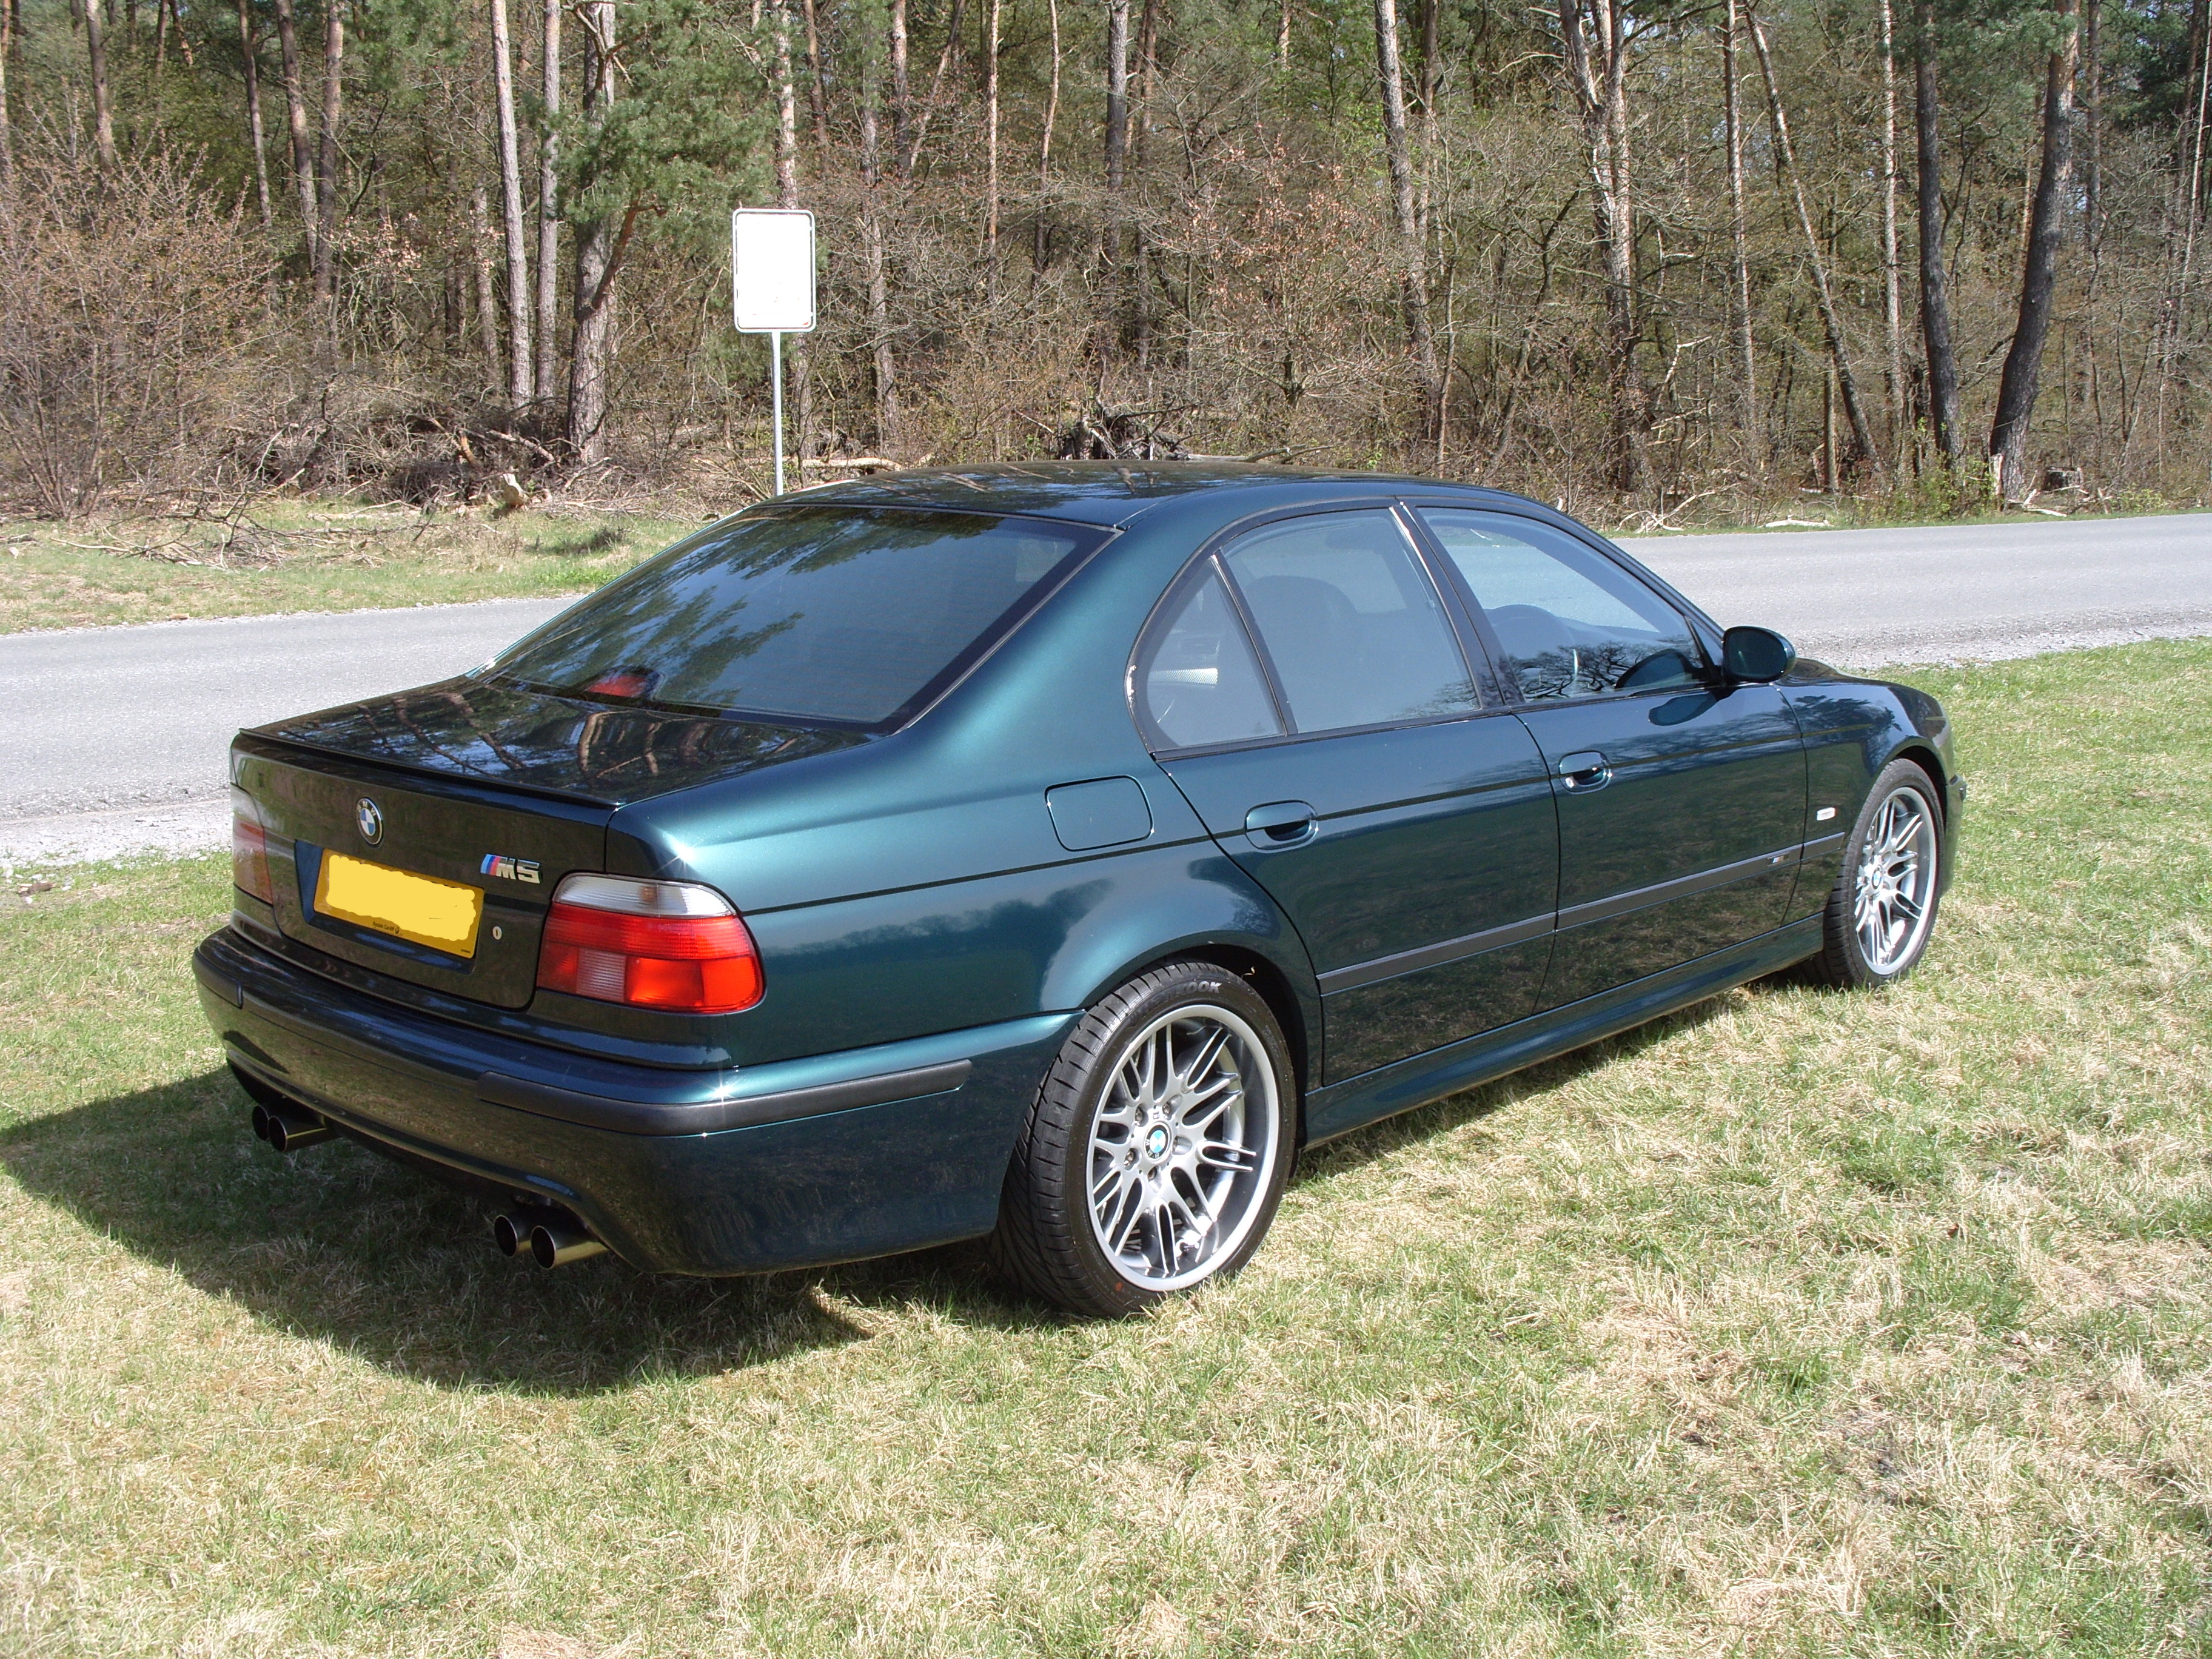 Oxford Green E39 M5 Decent Pics At Last-s1050182.jpg